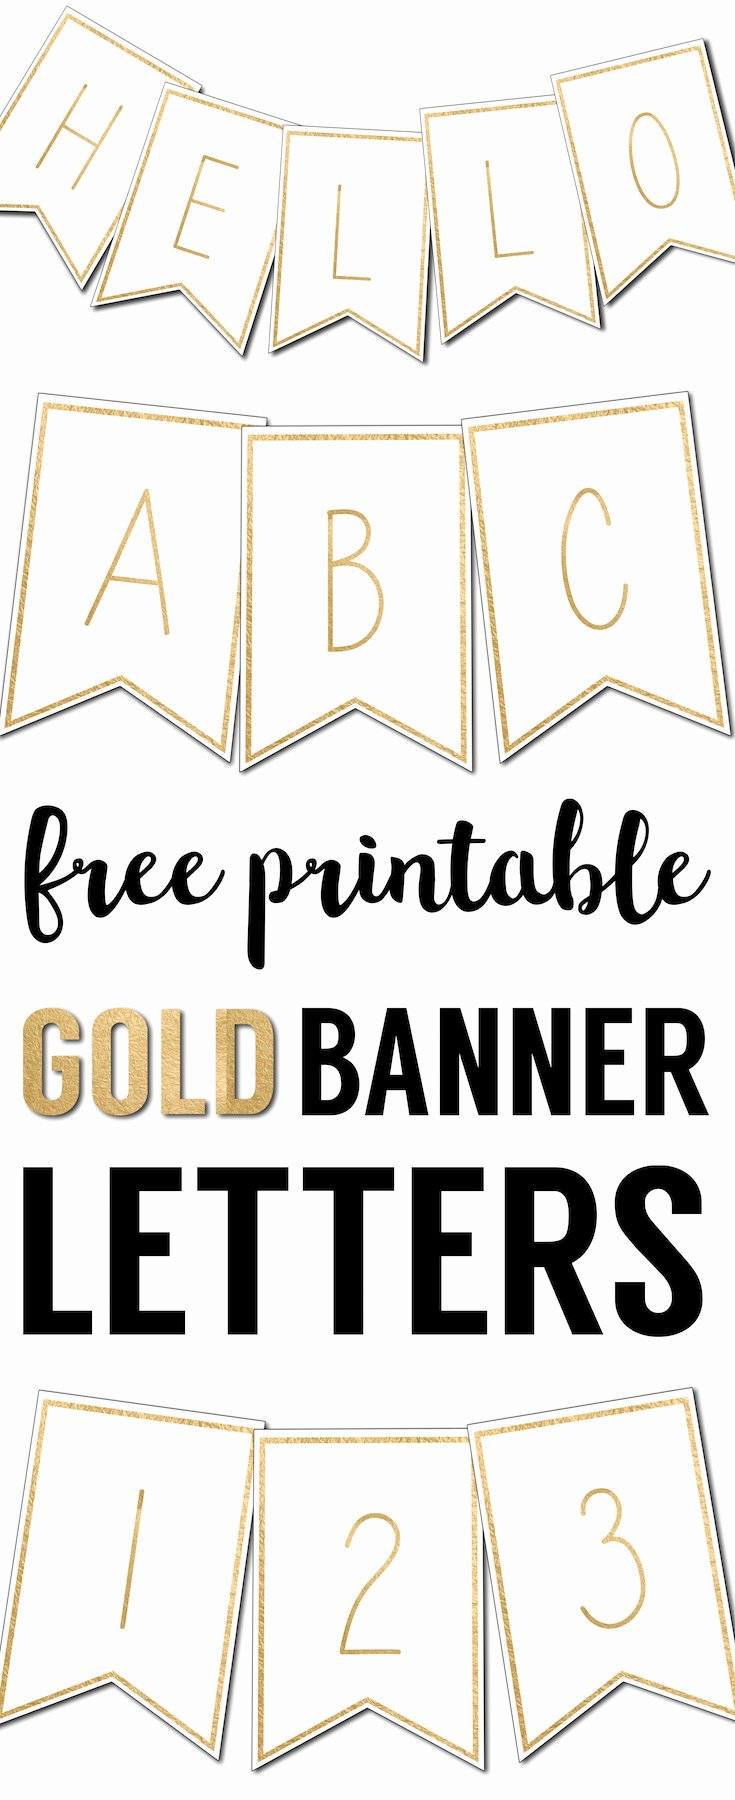 Free Printable Banner Template New Free Printable Banner Letters Templates Paper Trail Design